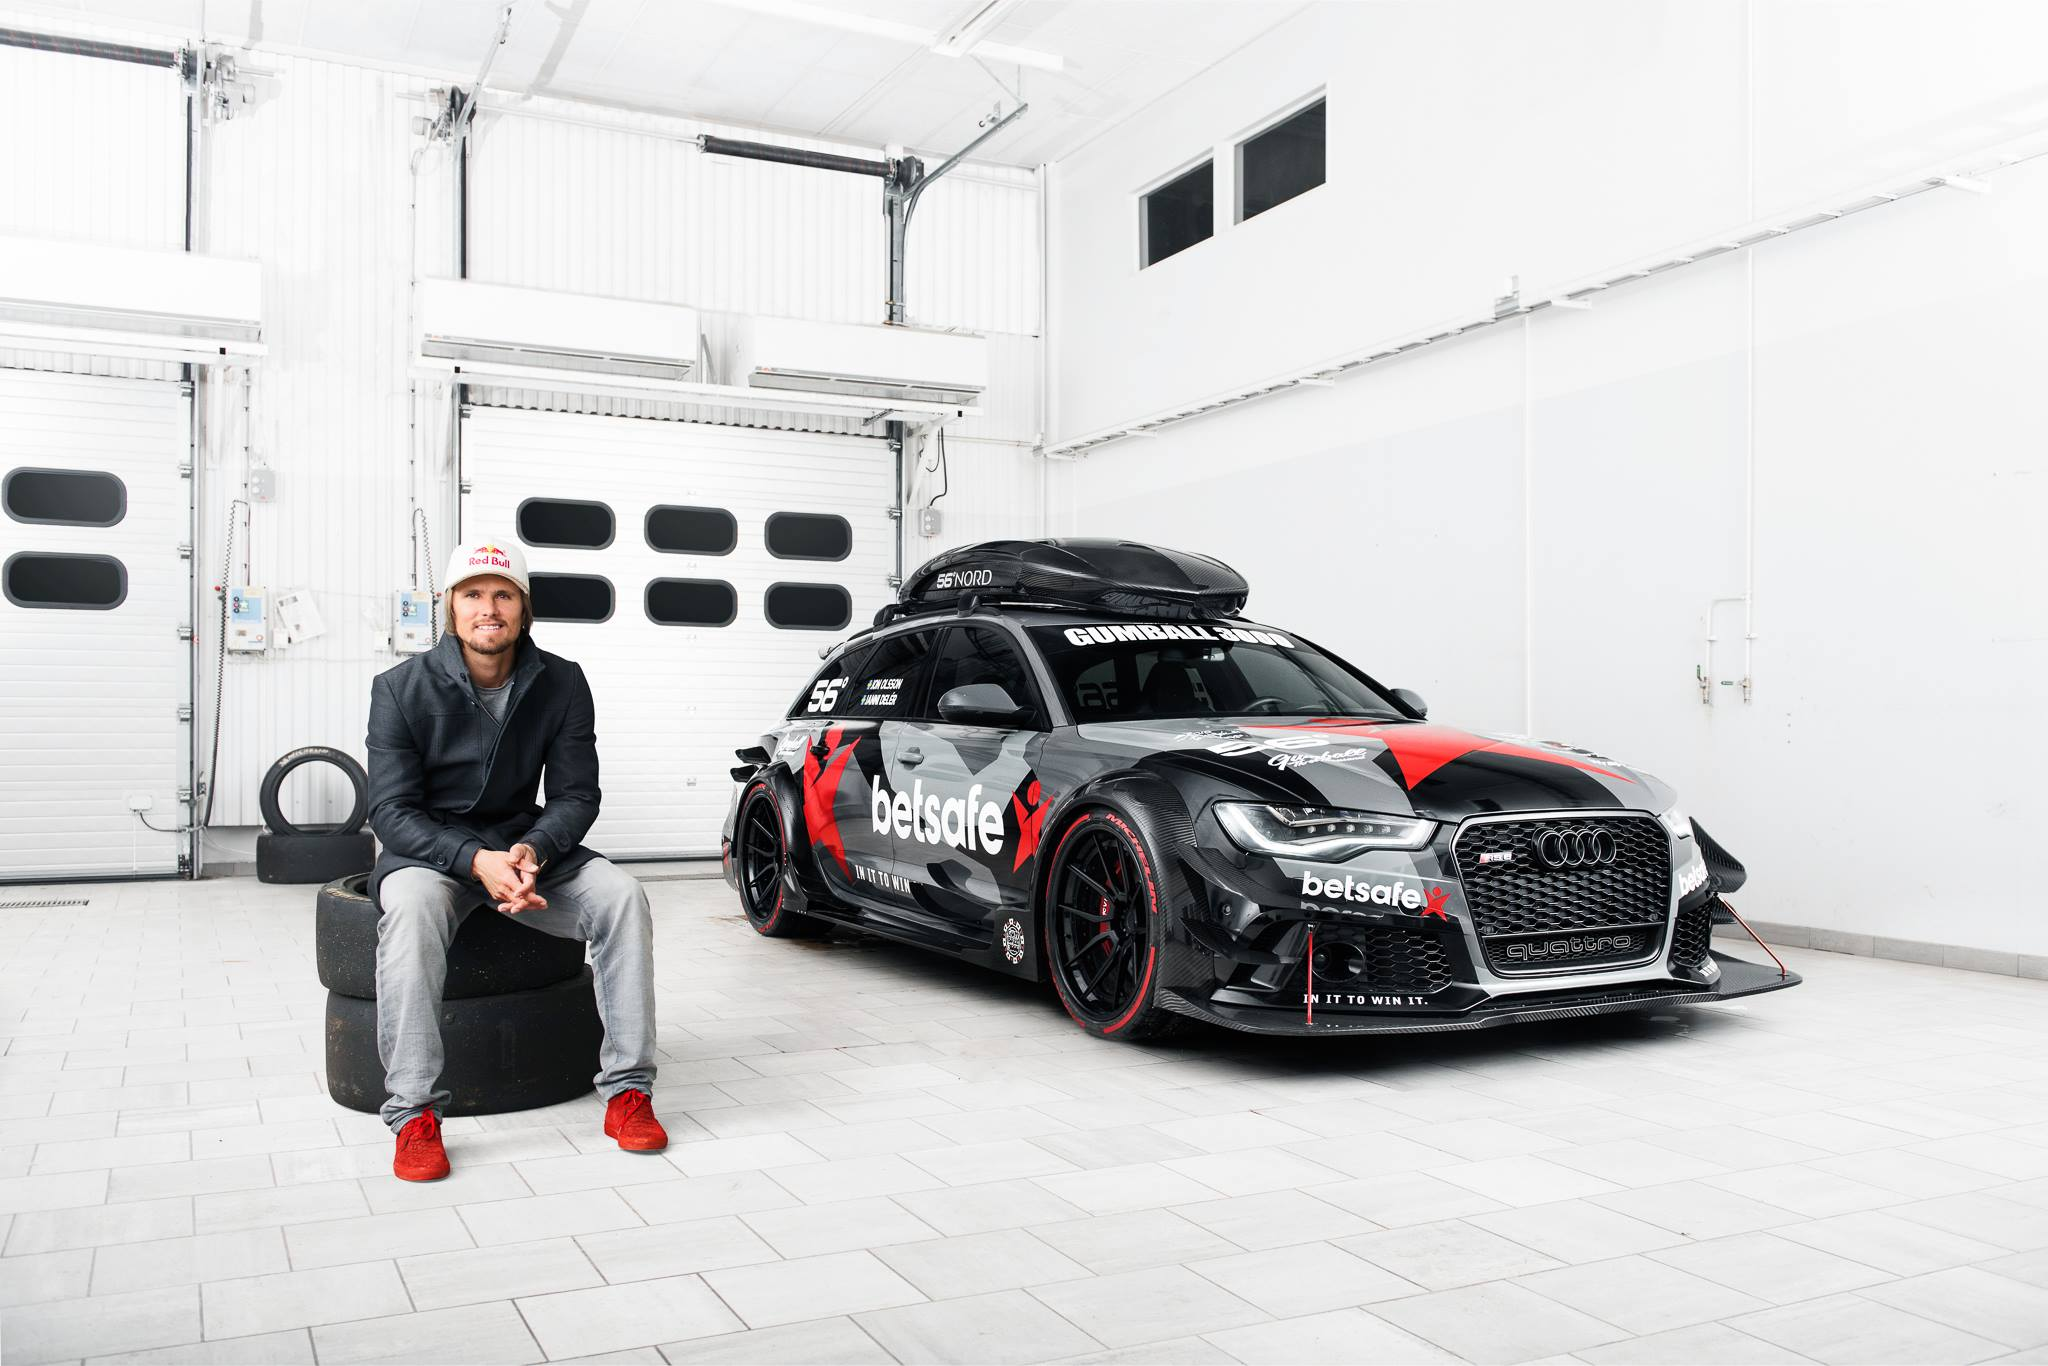 Roof Rack Lamborghini >> Jon Olsson's Audi RS6 DTM Has Gold Anodized Turbochargers and 950 HP - autoevolution